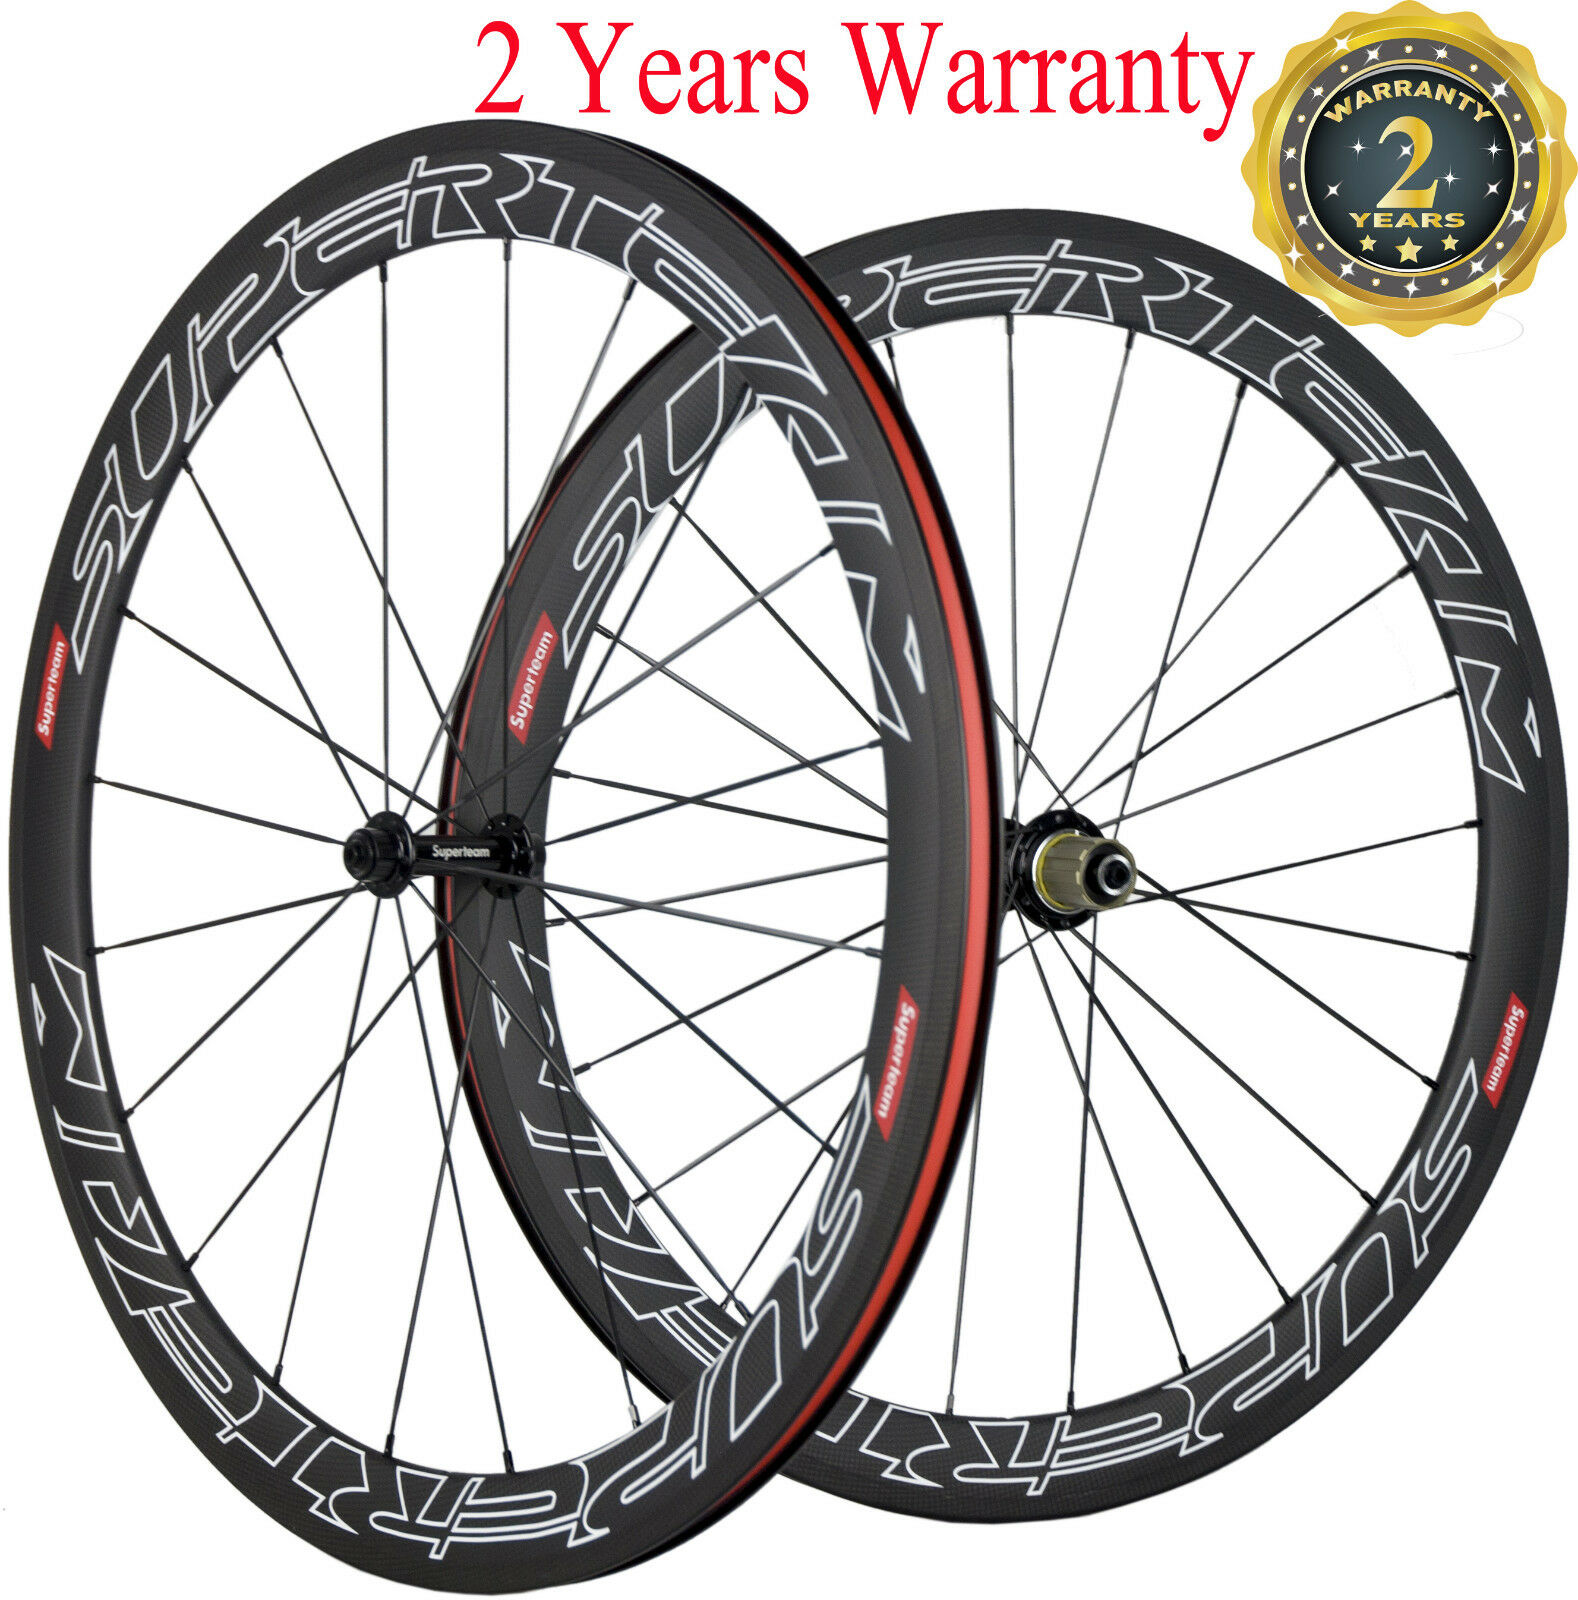 Carbon Wheels 50mm Clincher  Road Bike Front+Rear Wheelset Bicycle Race 700C Bike  discount low price